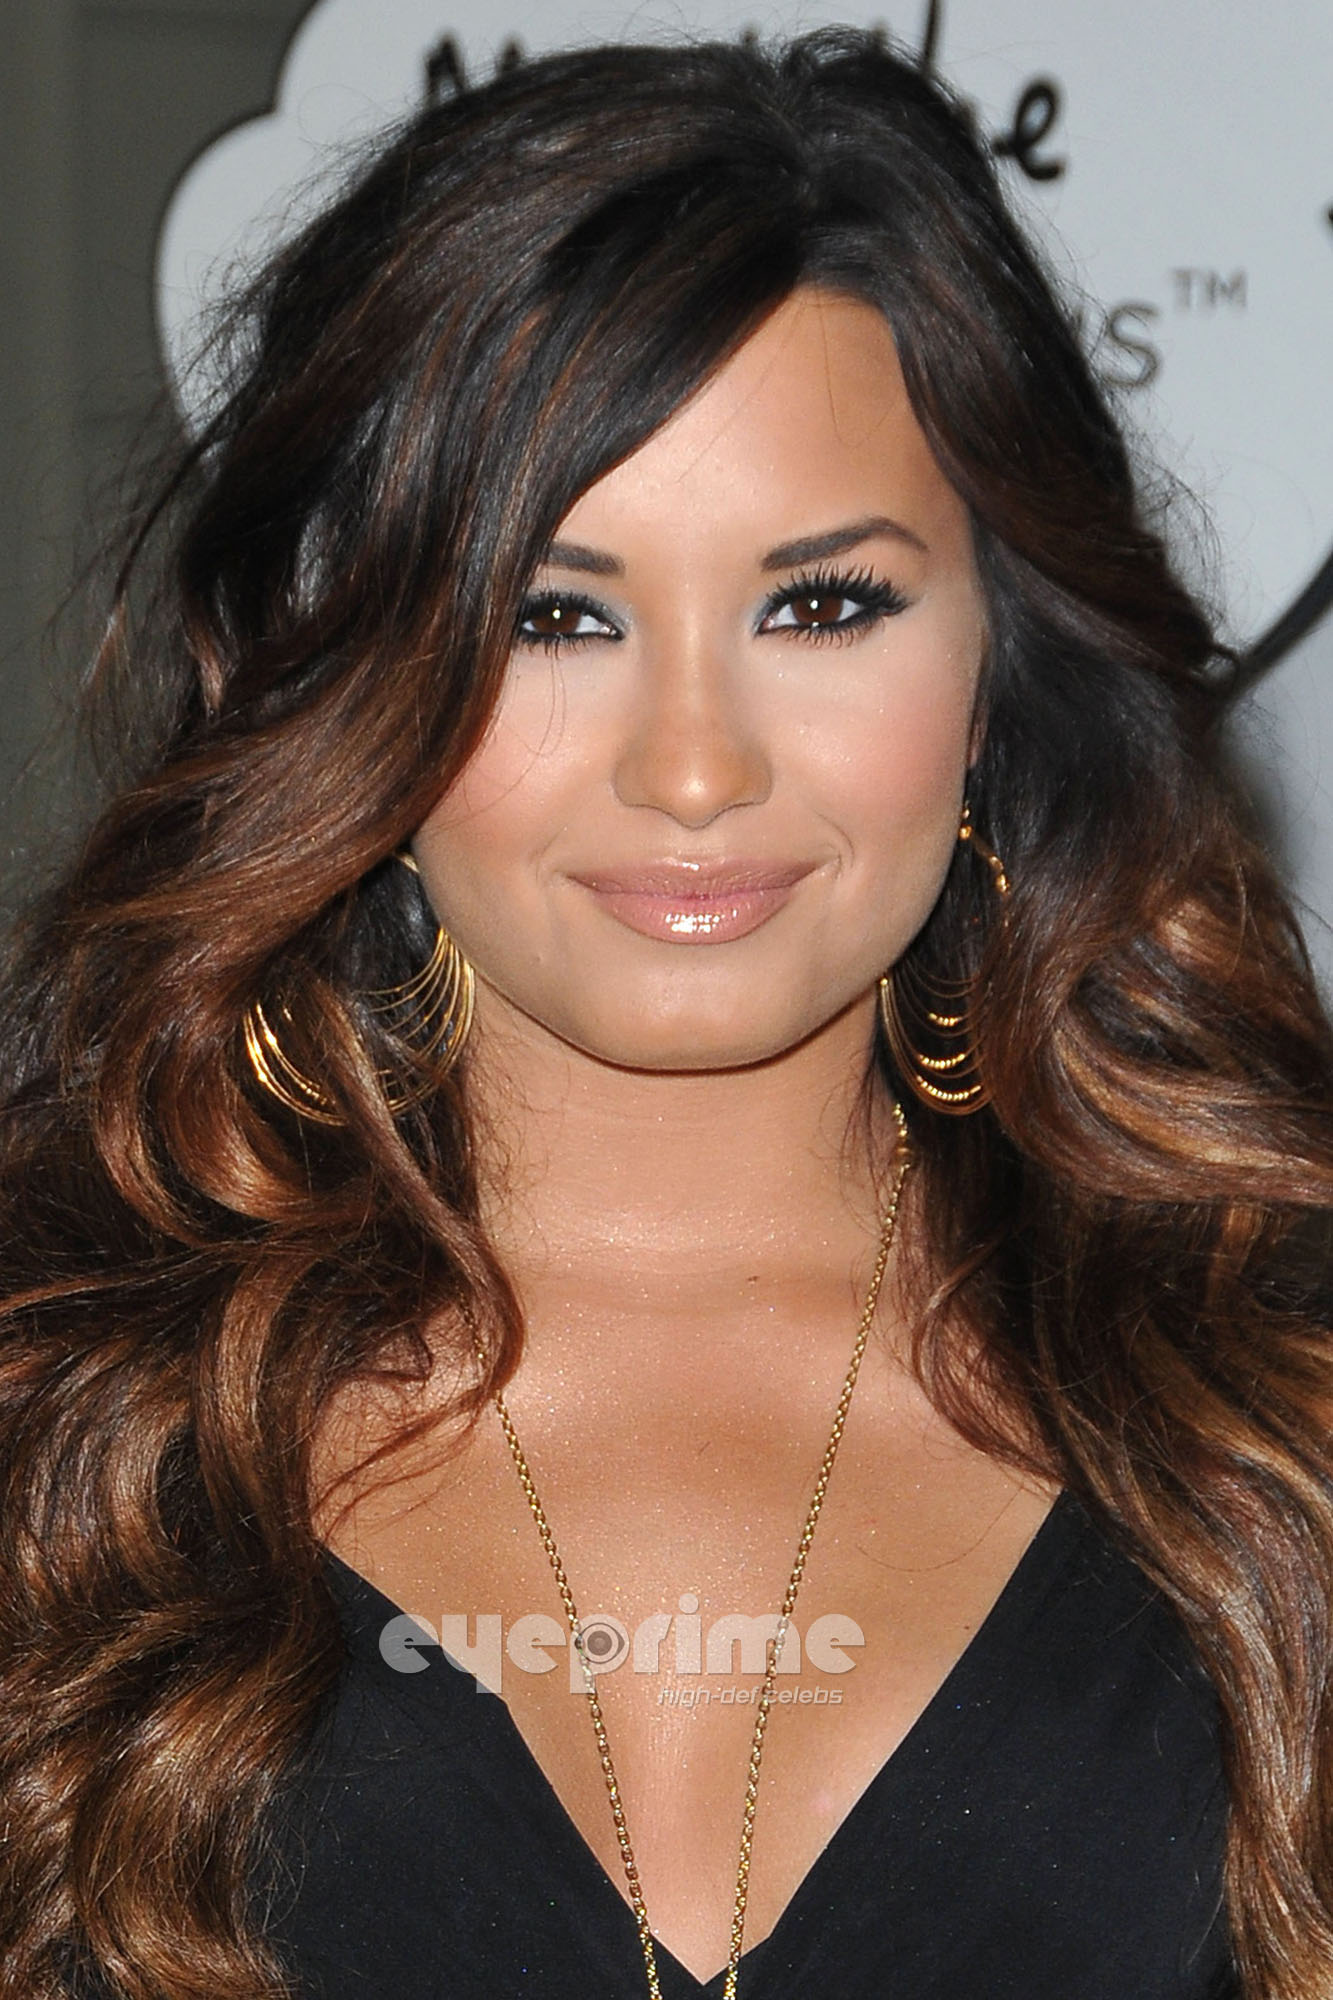 Demi Lovato: HTC Status Social Launch Event with Usher in Hollywood, July 19 - demi-lovato photo